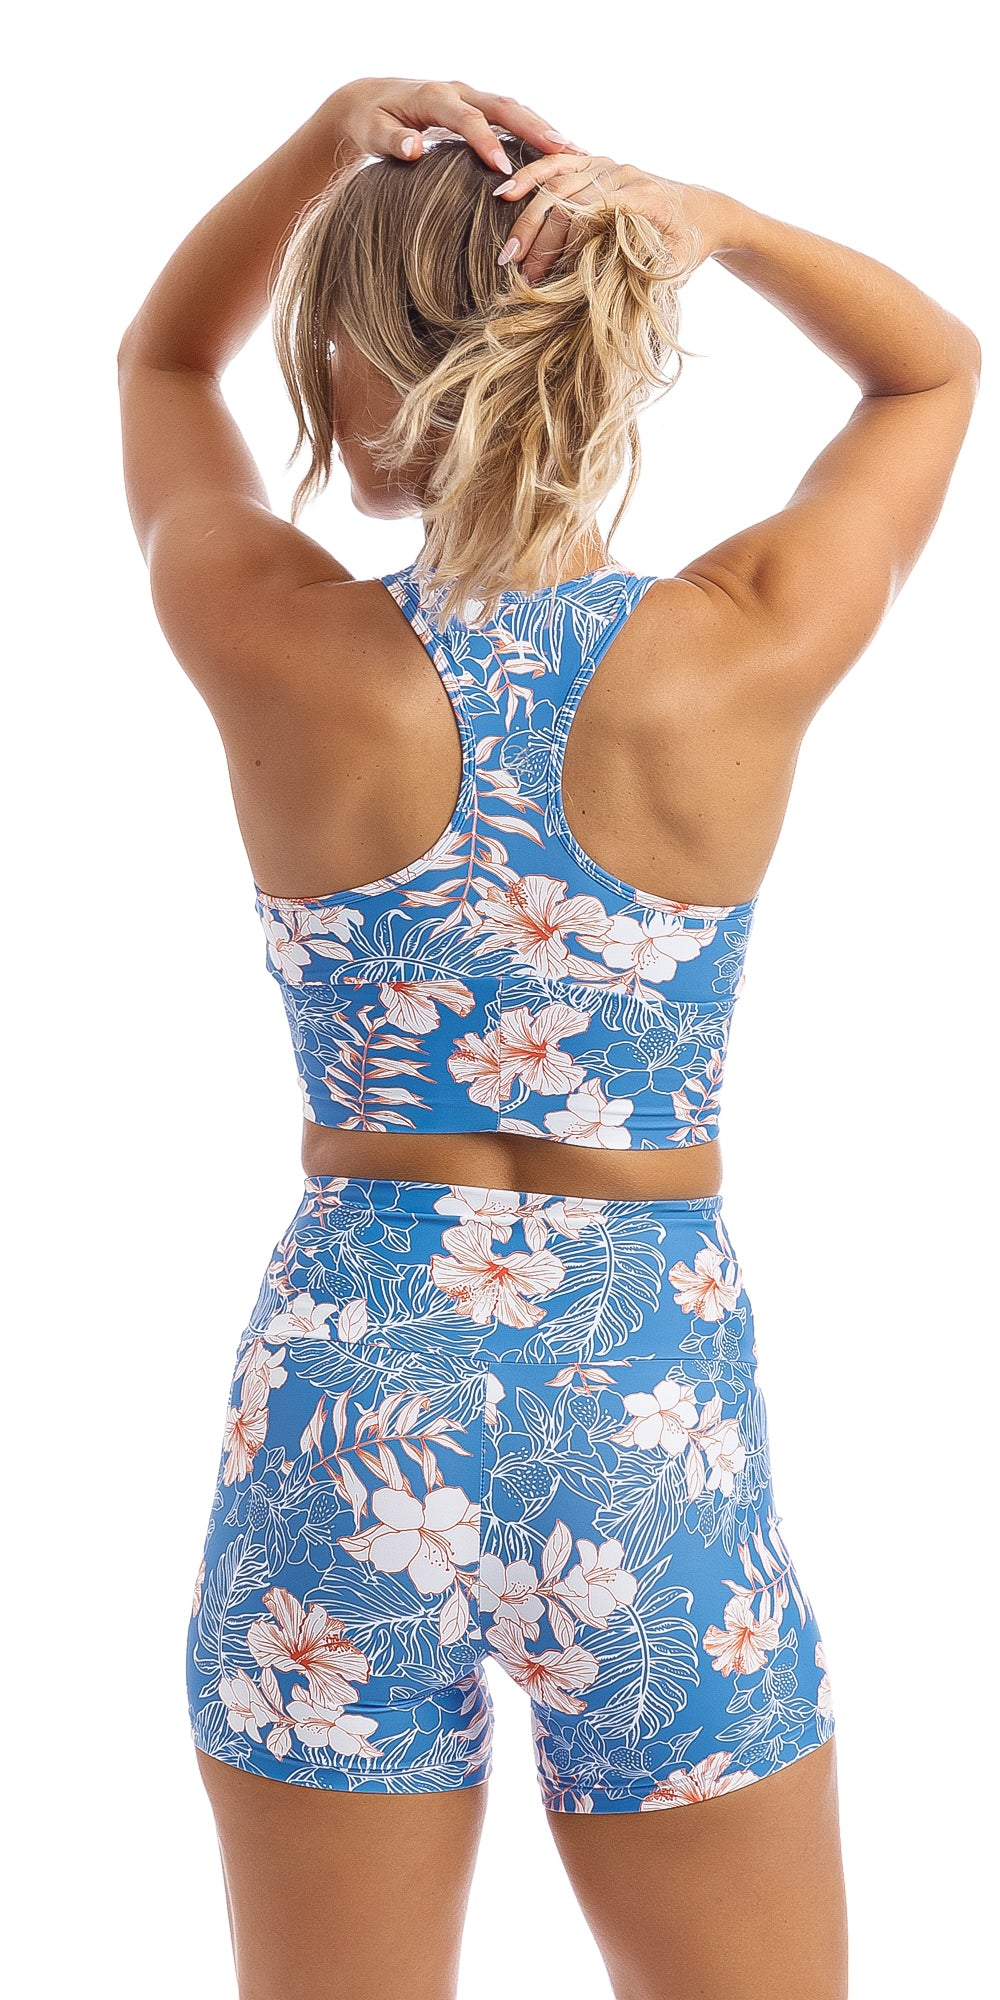 Rear view of lady wearing blue, white, pink floral Hibiscus Kiss print racer back bra & matching midi shorts